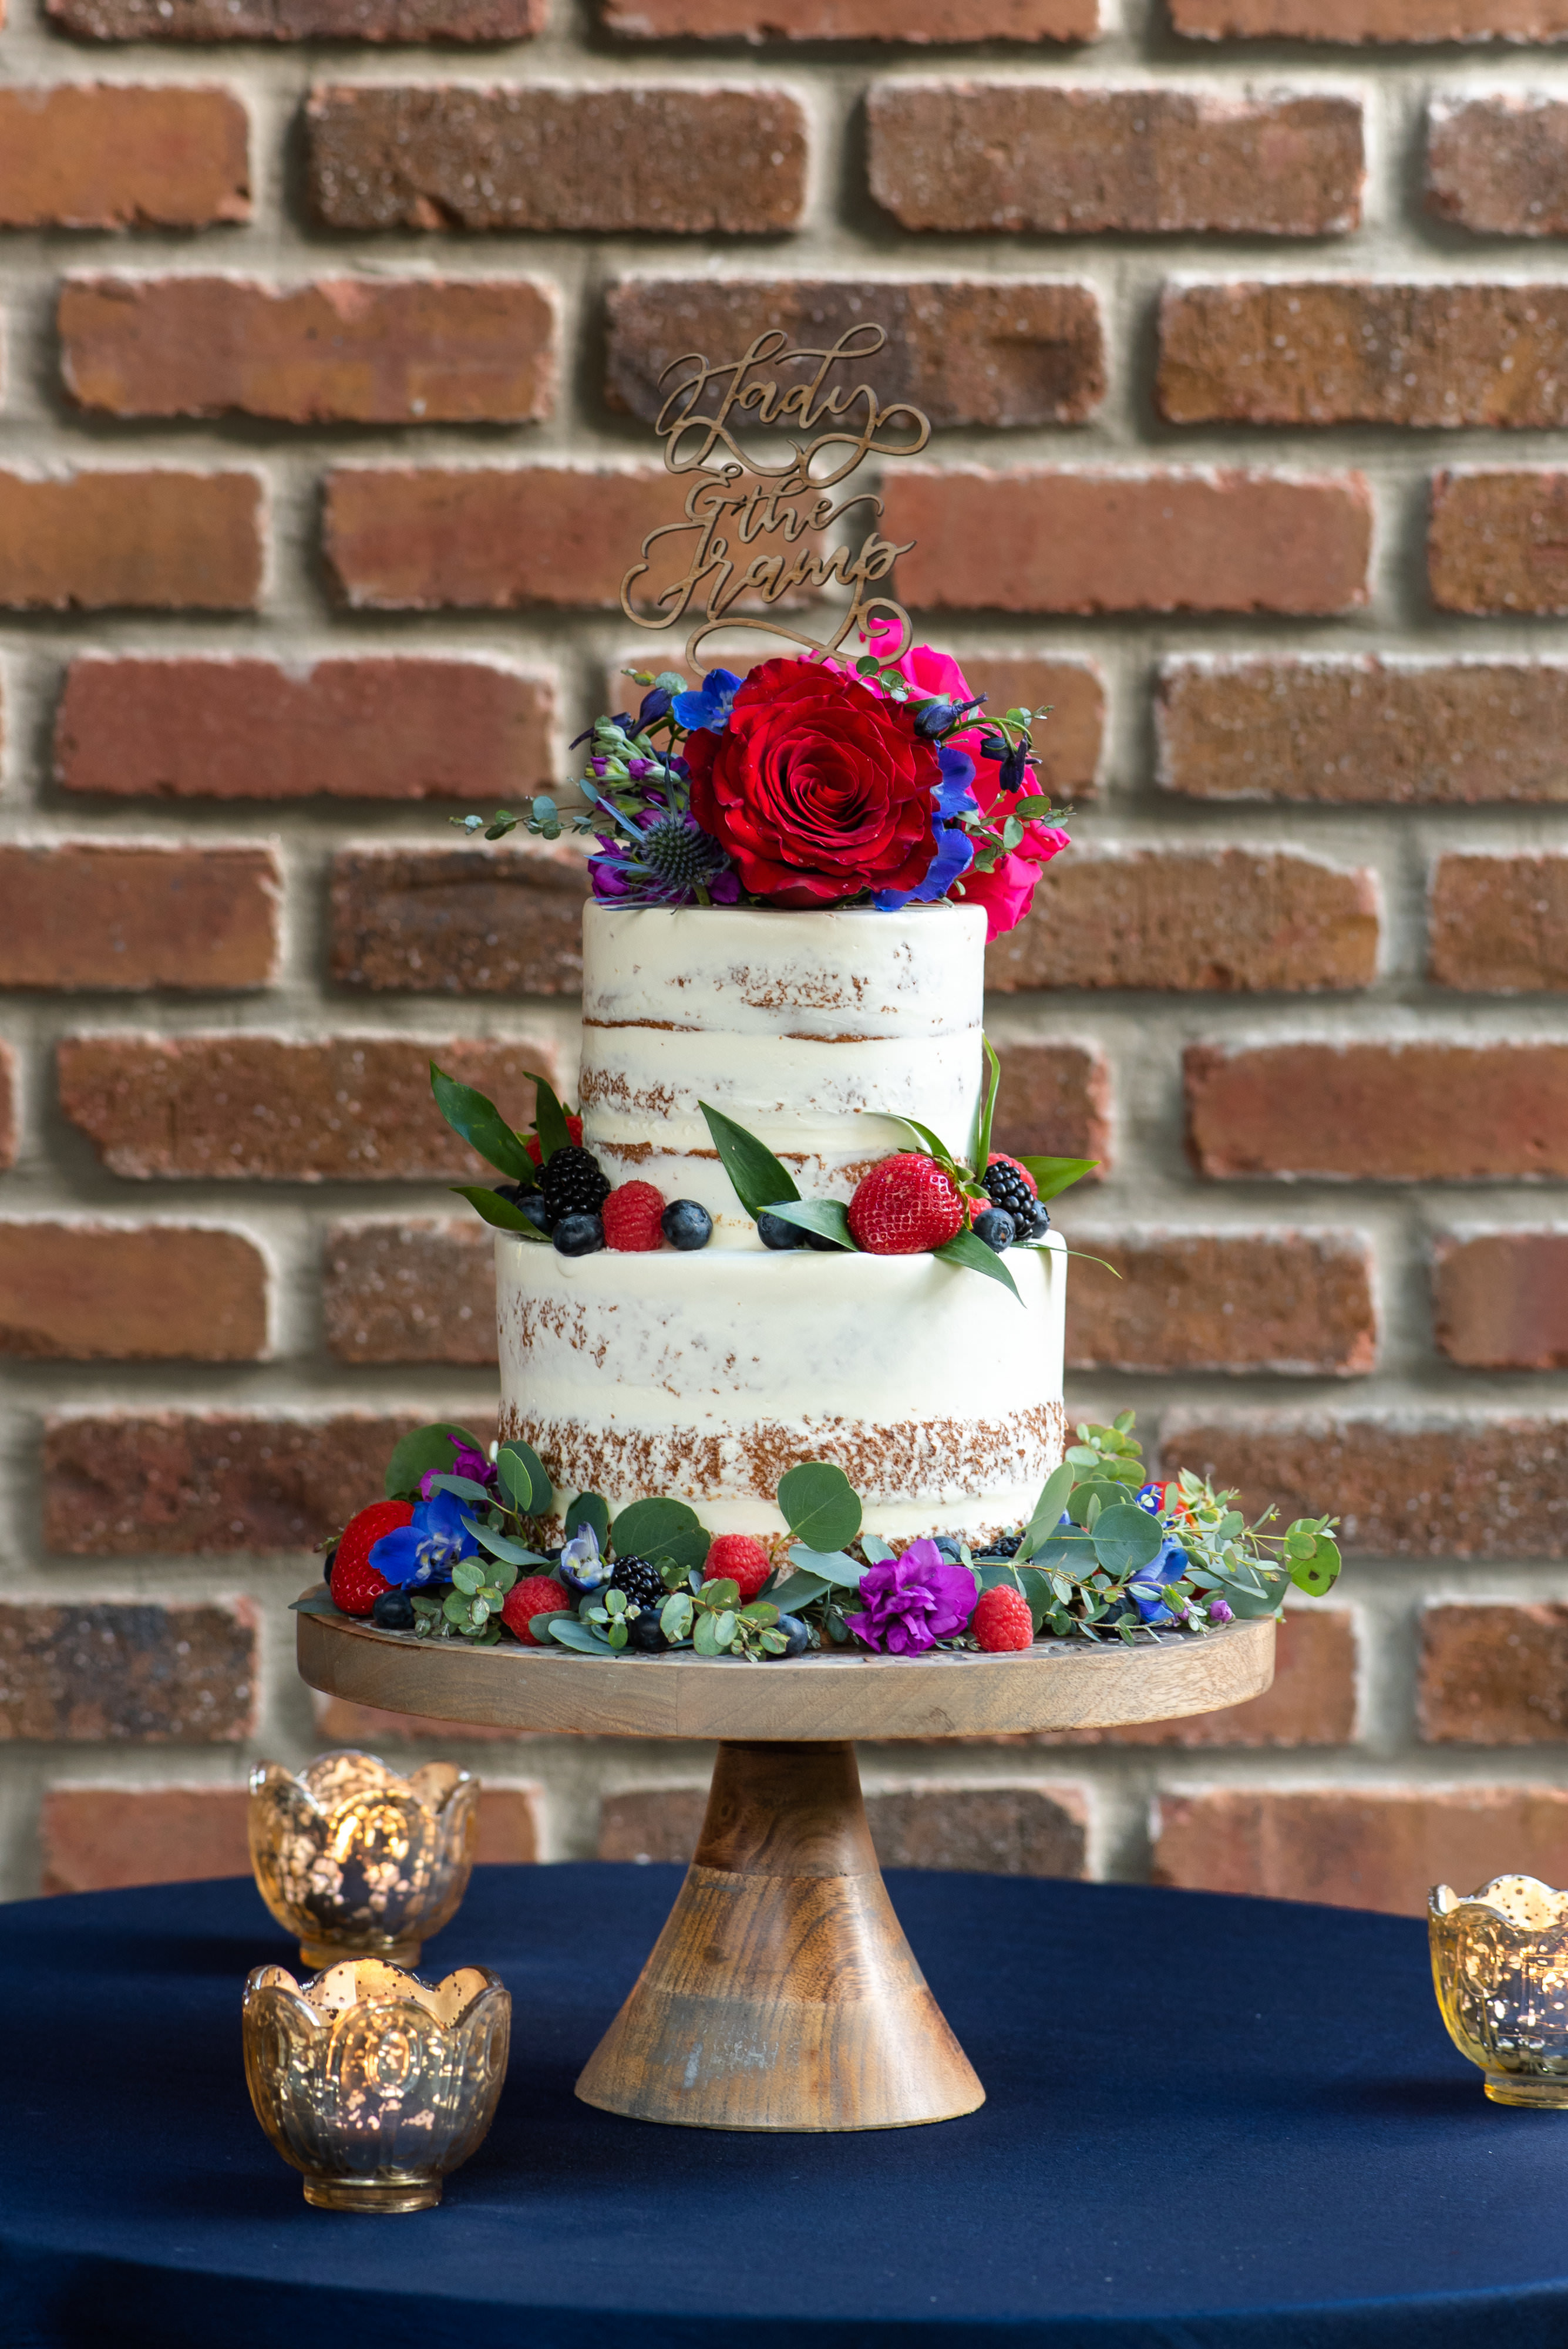 Two Tier Rustic Semi Naked Wedding Cake with Red, Purple, Pink, Blue and Greenery Real Flower Decor, Laser Cut Cake Topper and Red Rose, Pink Floral Cake Topper on Wooden Cake Stand, Blue Tablecloth, Gold Mercury Candles | Tampa Bay Wedding Photographer Caroline and Evan Photography | Florist Monarch Events and Design | Designer and Planner Southern Glam Weddings and Events | Cake Baker Artistic Whisk